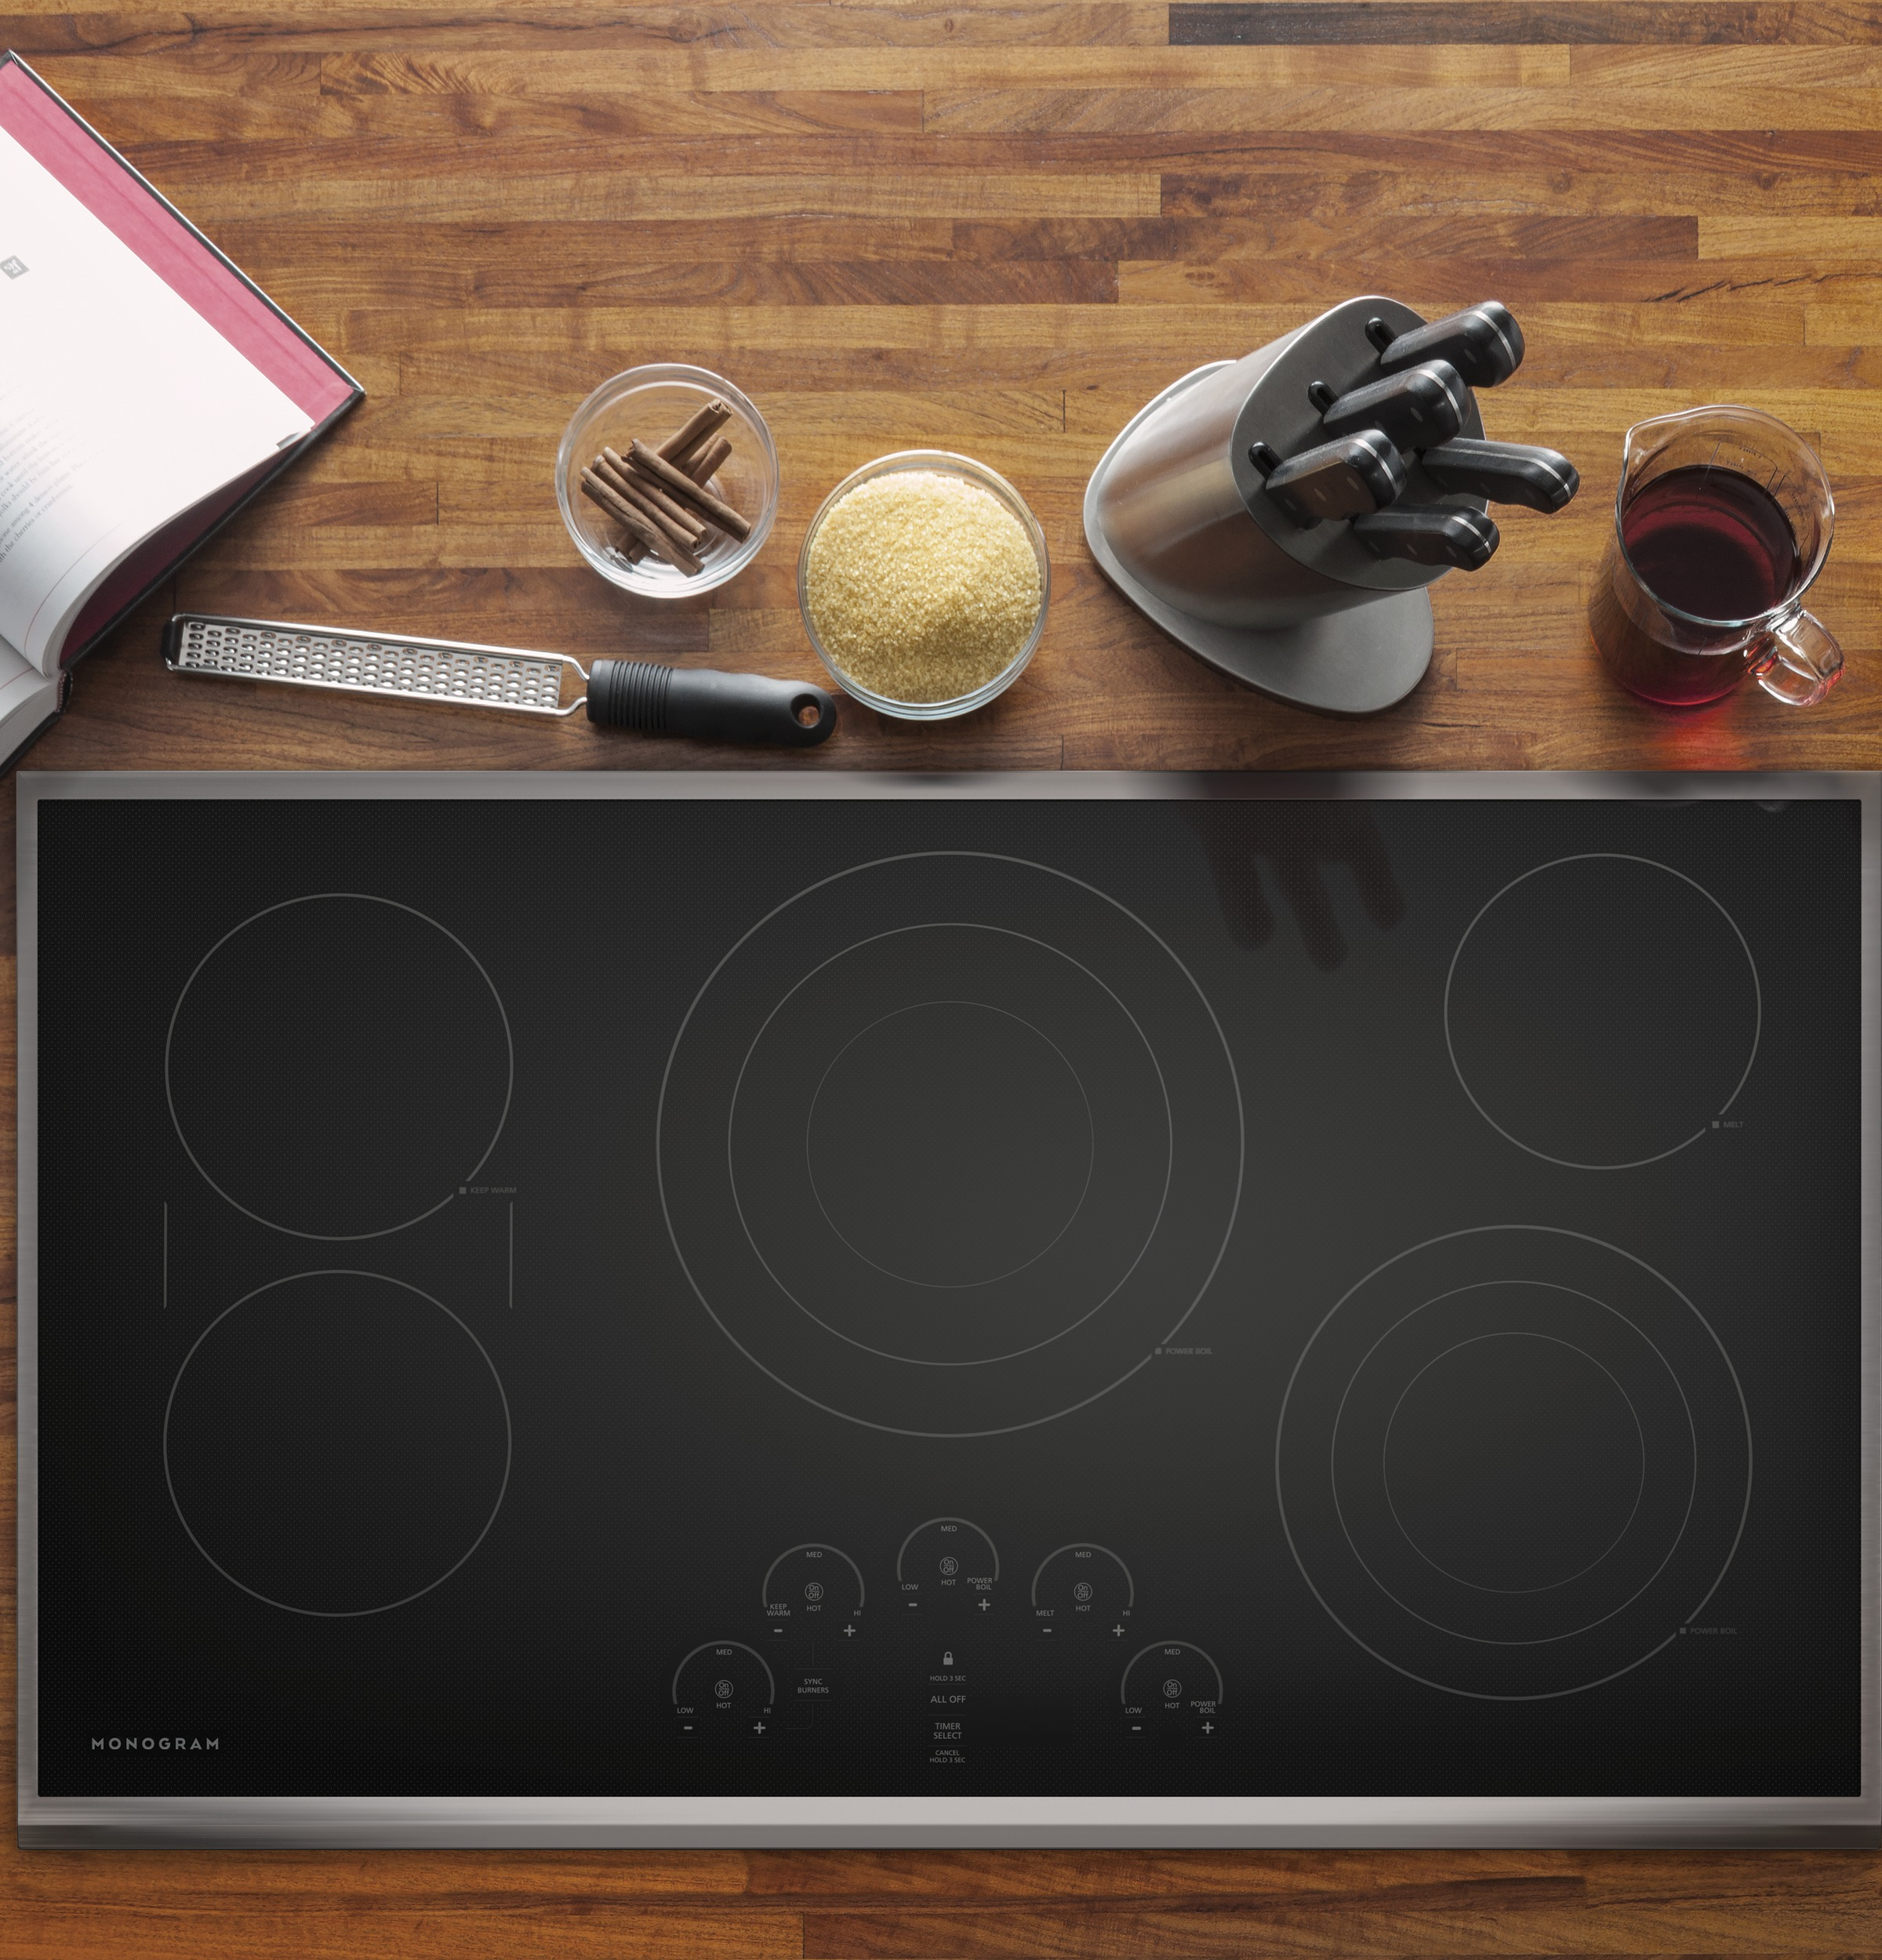 "Model: ZEU36RSJSS | Monogram Monogram 36"" Touch Control Electric Cooktop"